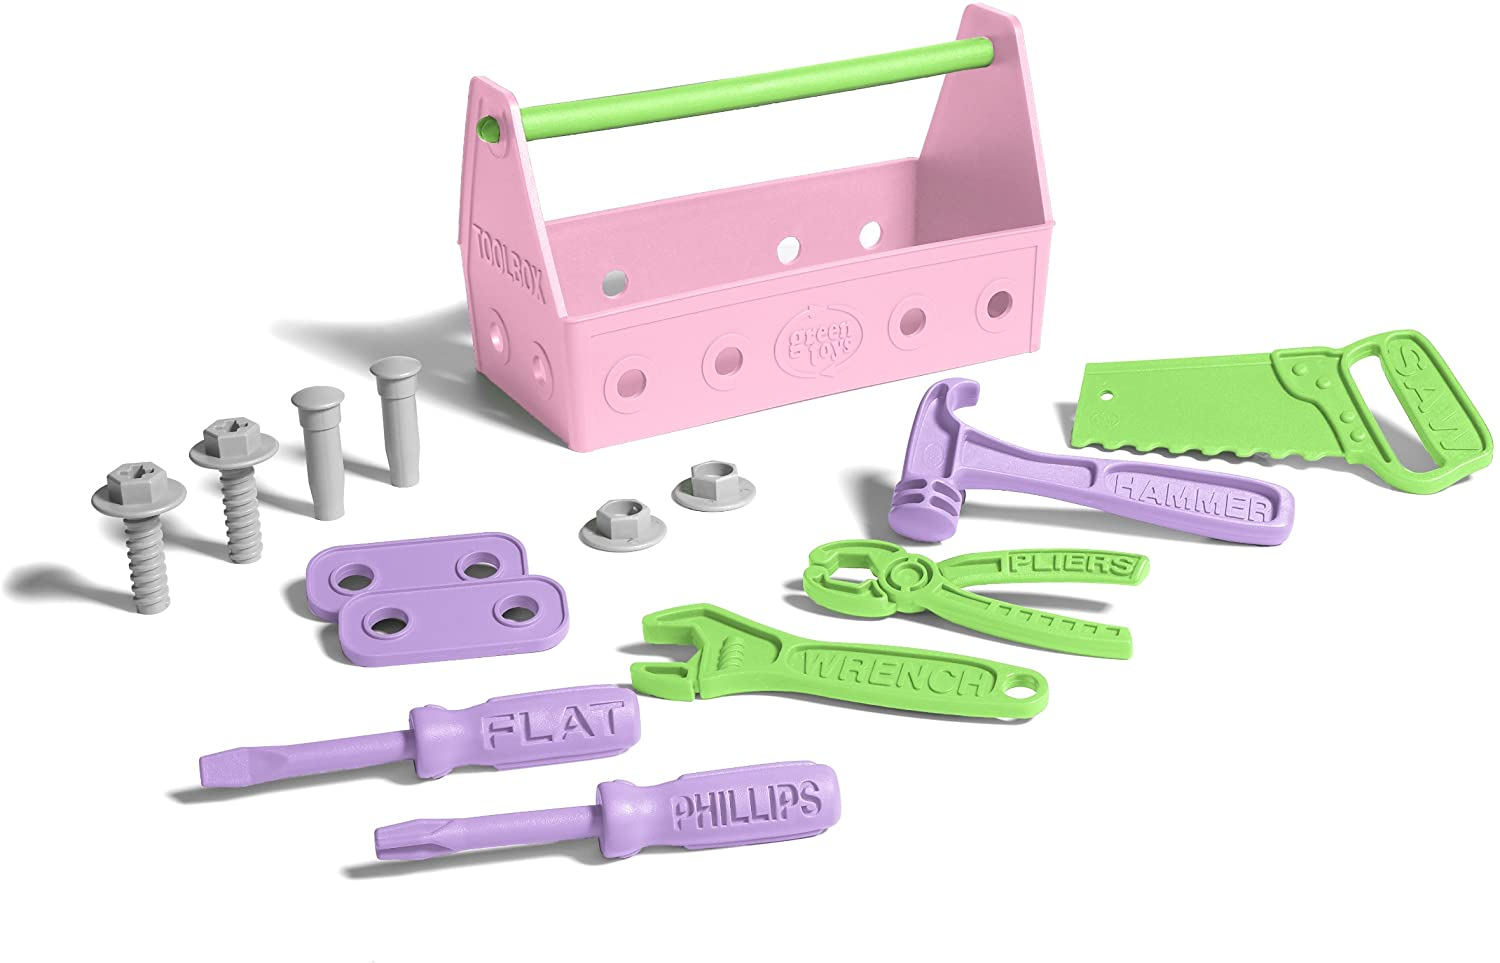 Green Toys Pink Play Toolset For Kids